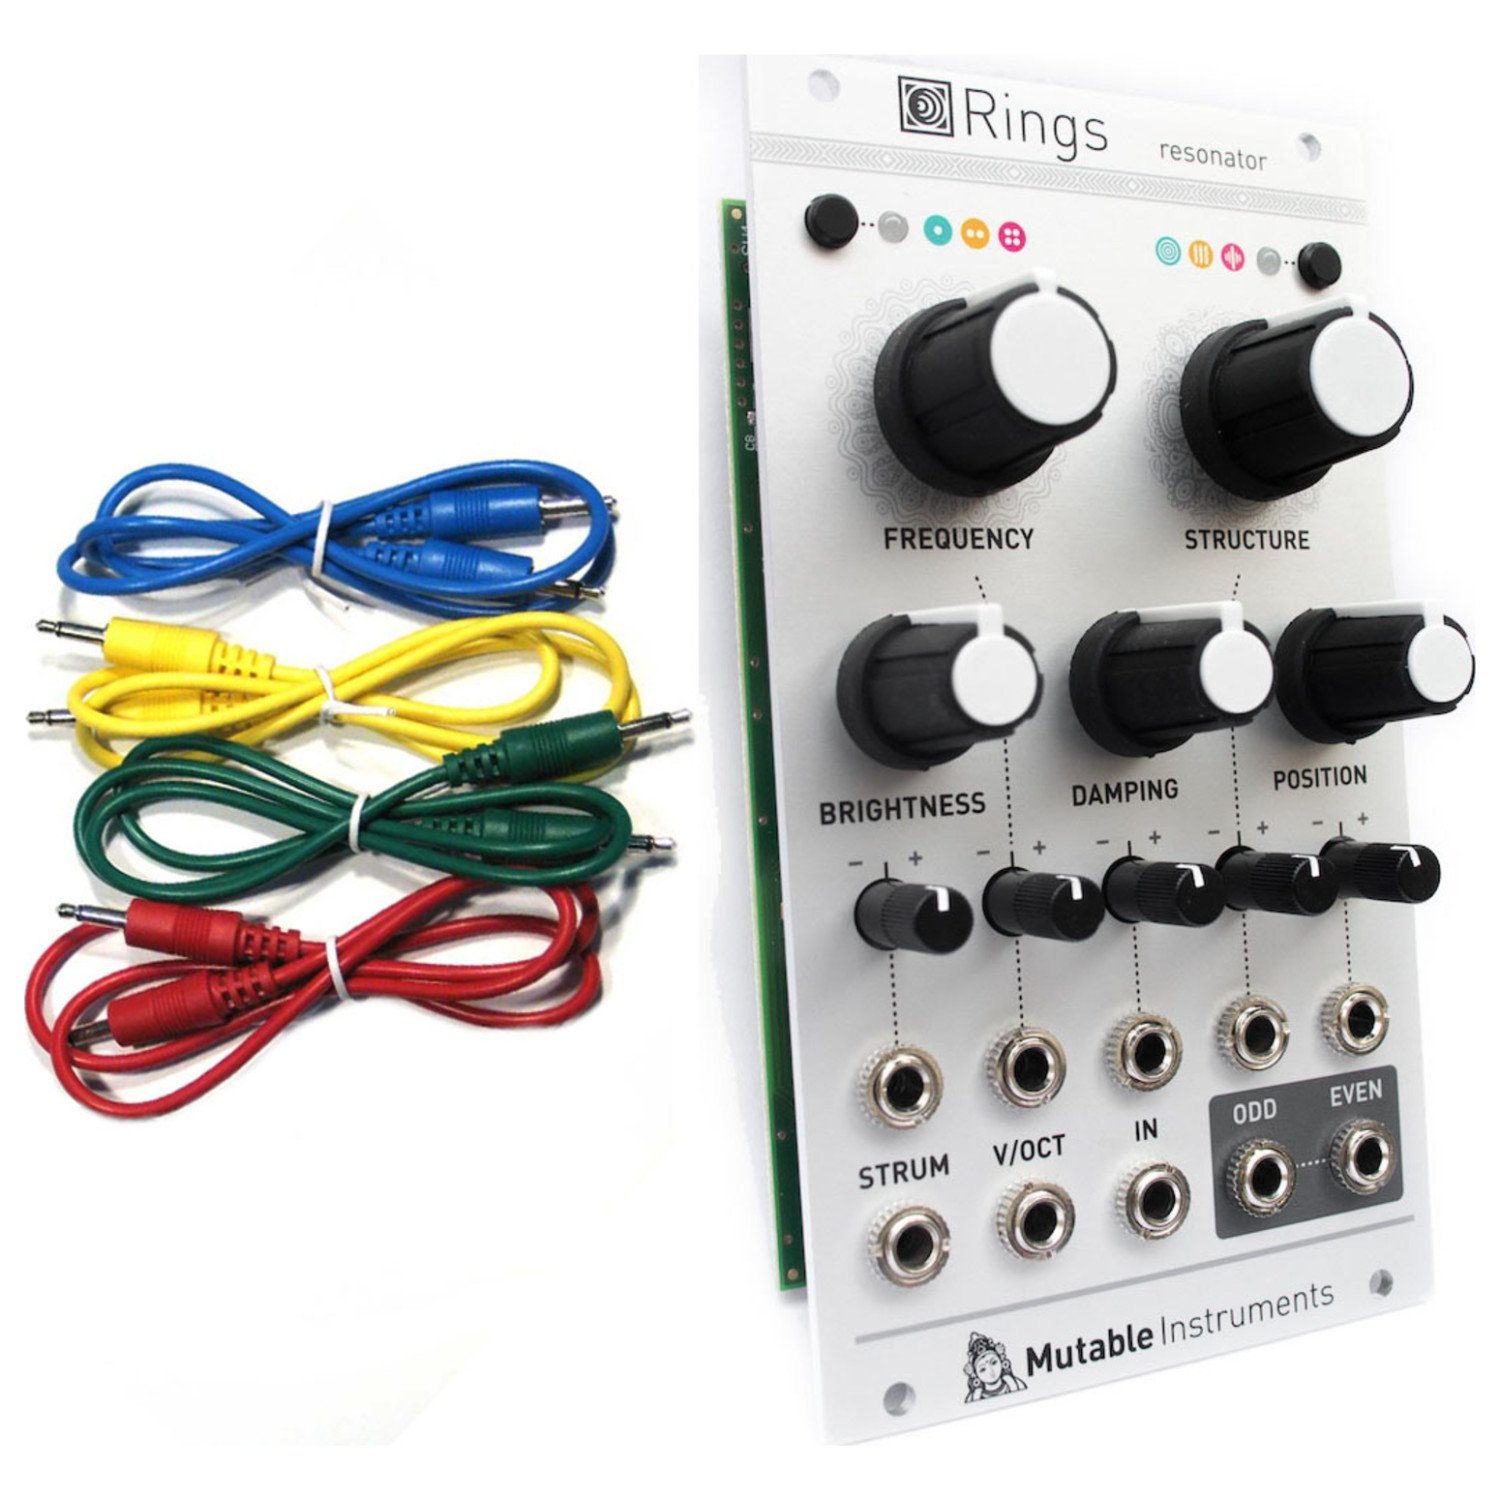 Mutable Instruments Rings Resonator Eurorack Module w/ 4 Cables